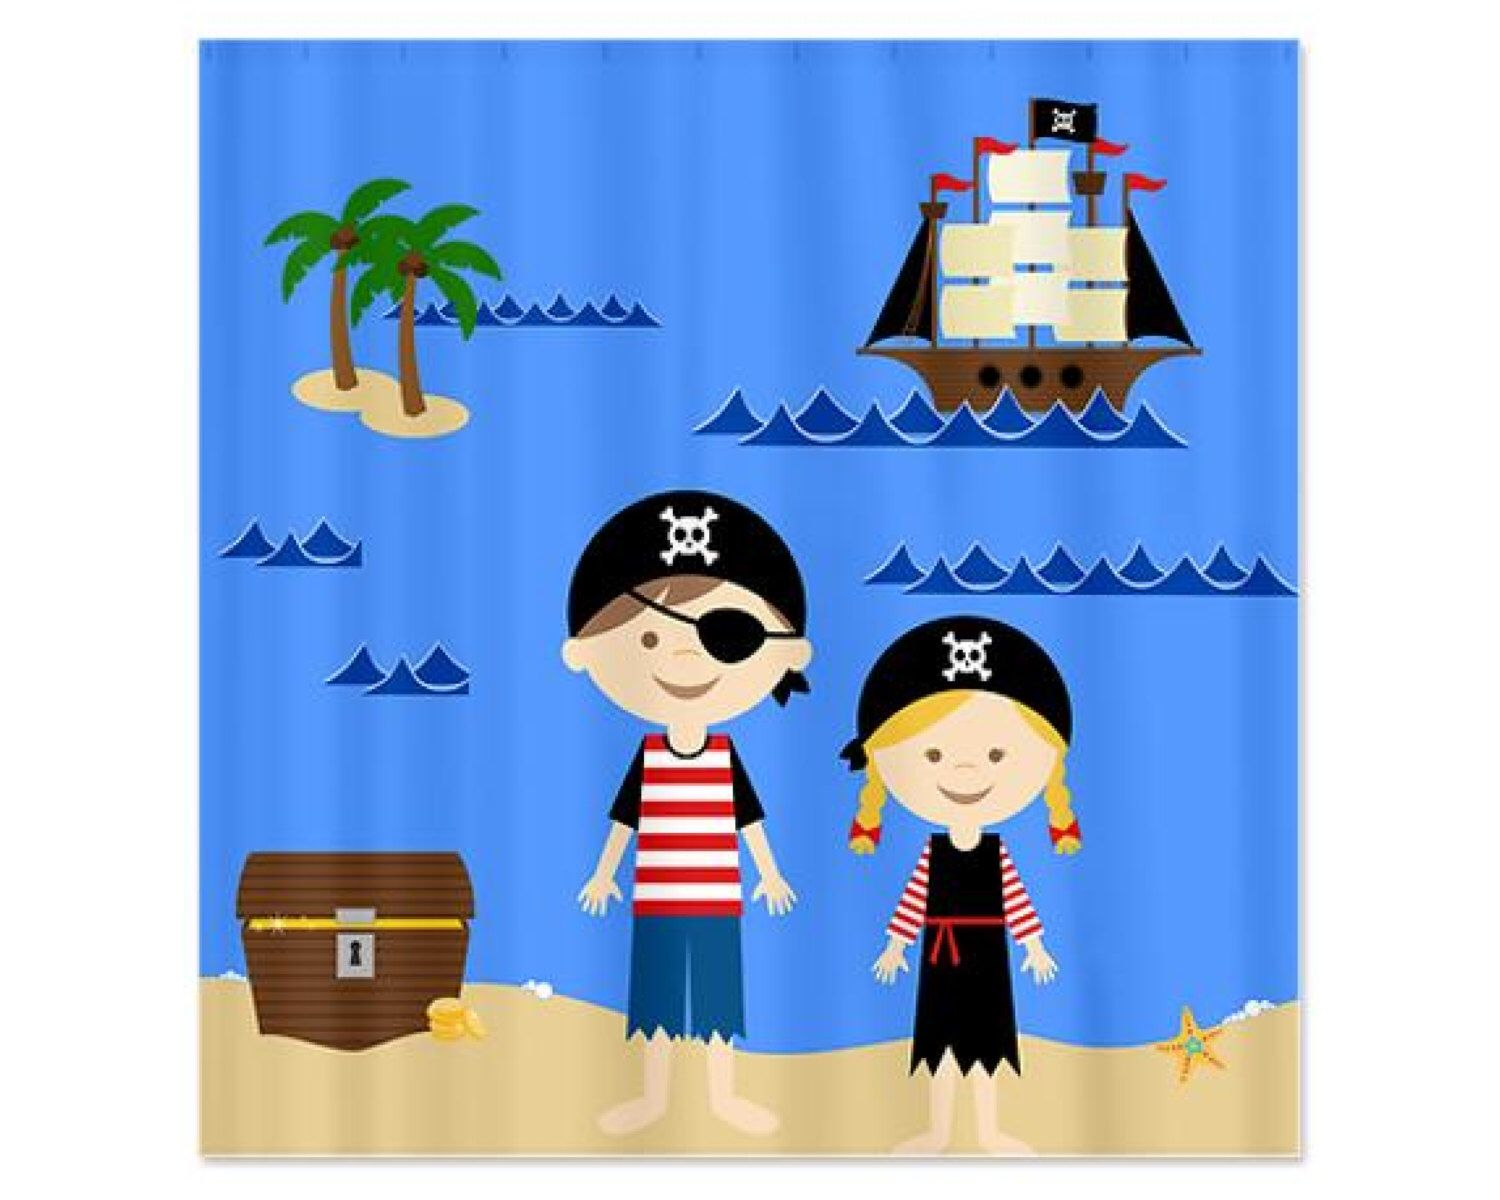 Top kids pirate shower curtain pirate bathroom decor kids pirate - Pirate Kids Personalized Kids Shower Curtain Children S Bathroom Shower Curtain By Kidsshower On Etsy